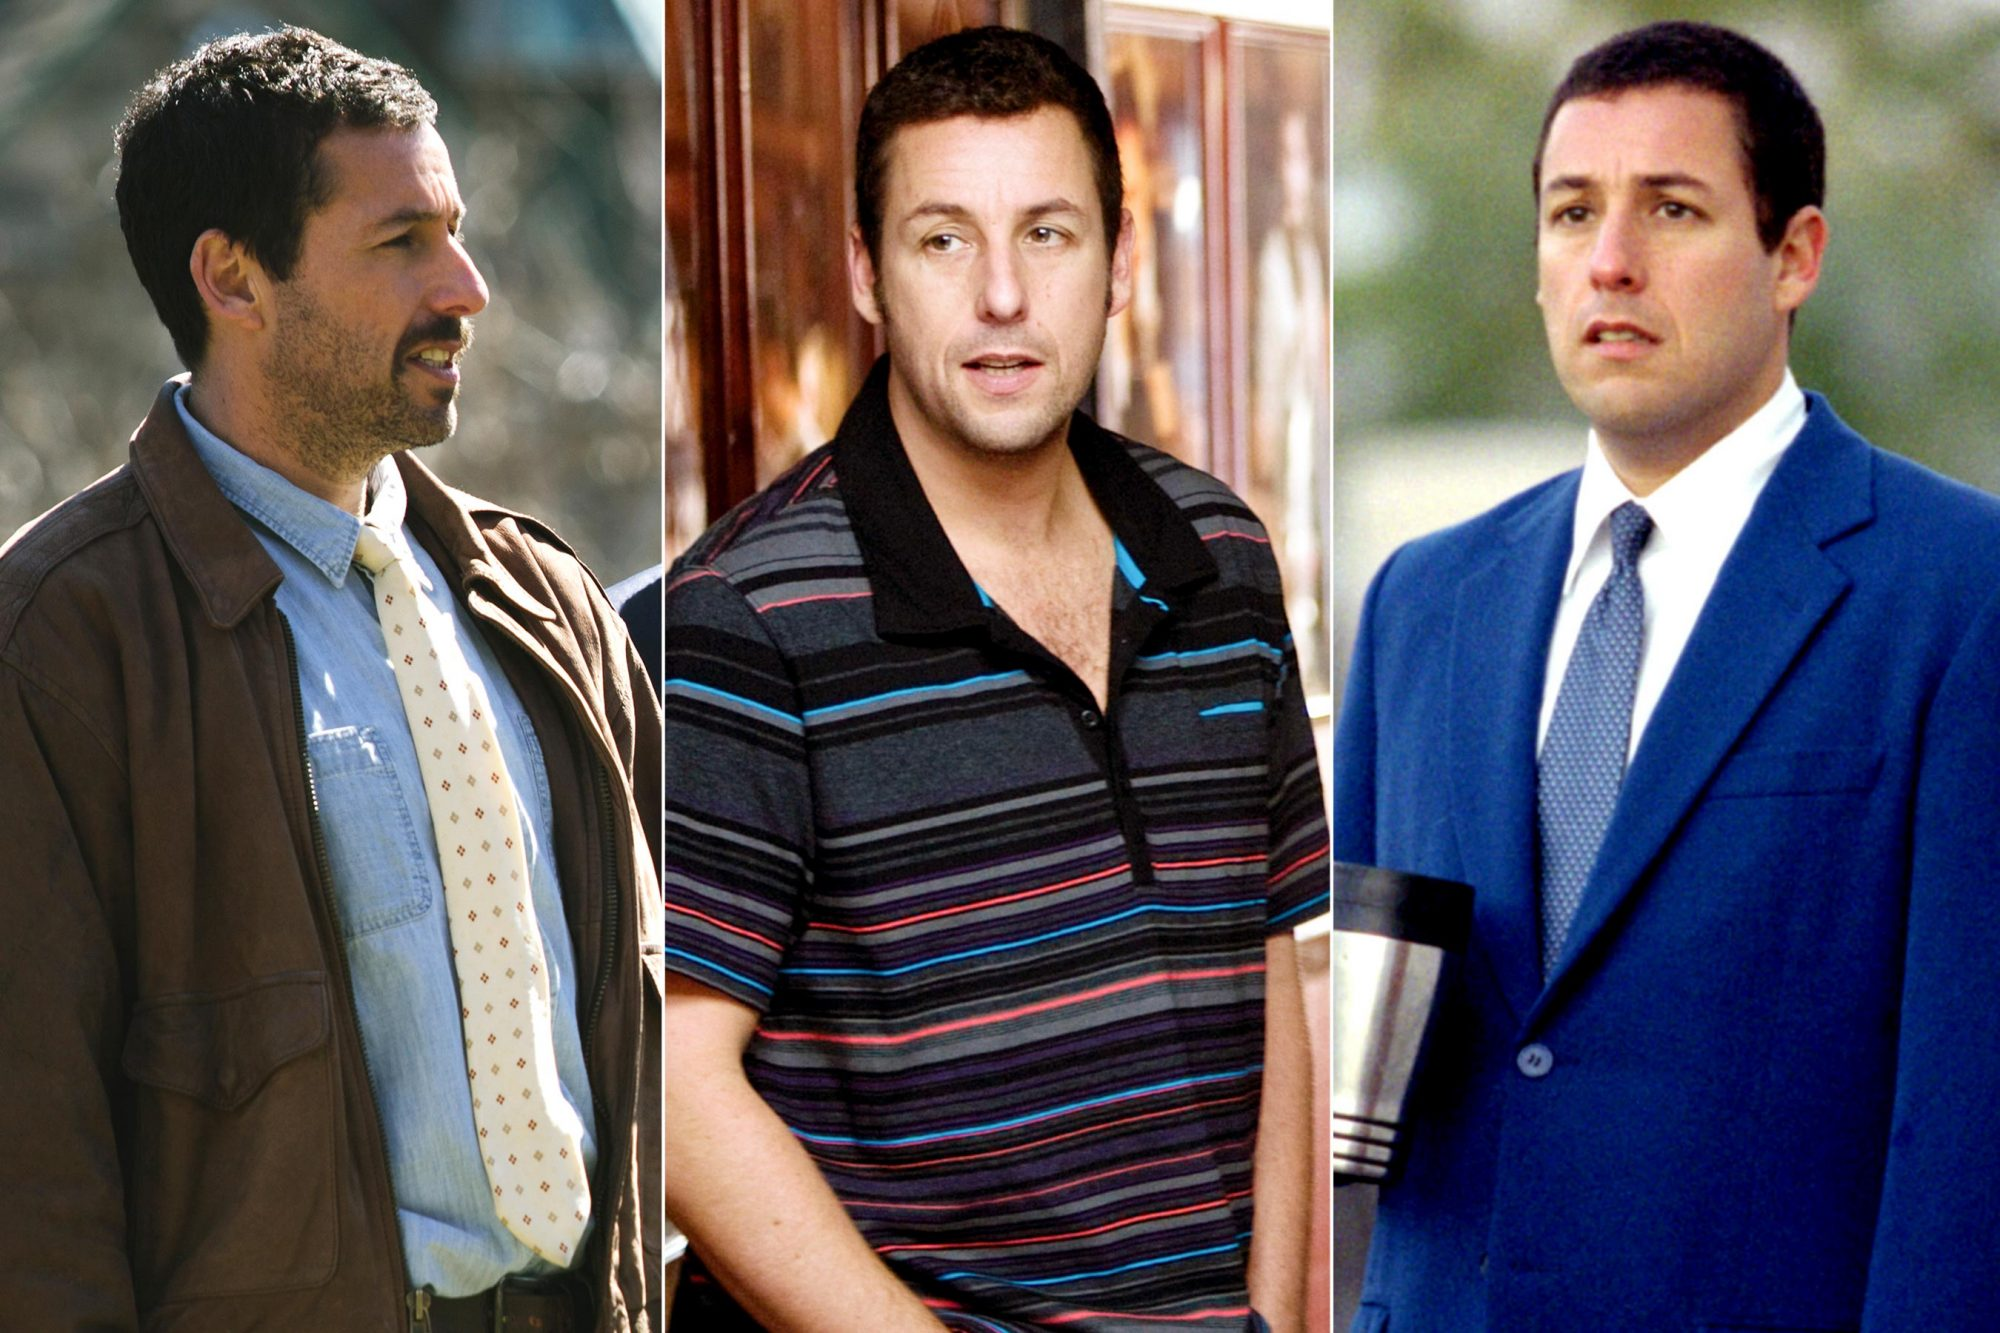 (Left to right) Adam Sandler and Ben Stiller in Director Noah Baumbach's THE MEYEROWITZ STORIES (NEW AND SELECTED) to be released by Netflix. FUNNY PEOPLE, from left: Adam Sandler, Seth Rogen, 2009. Ph: Tracy Bennett/©Universal/courtesy Everett Collection PUNCH-DRUNK LOVE, Adam Sandler, 2002, (c) Columbia/courtesy Everett Collection